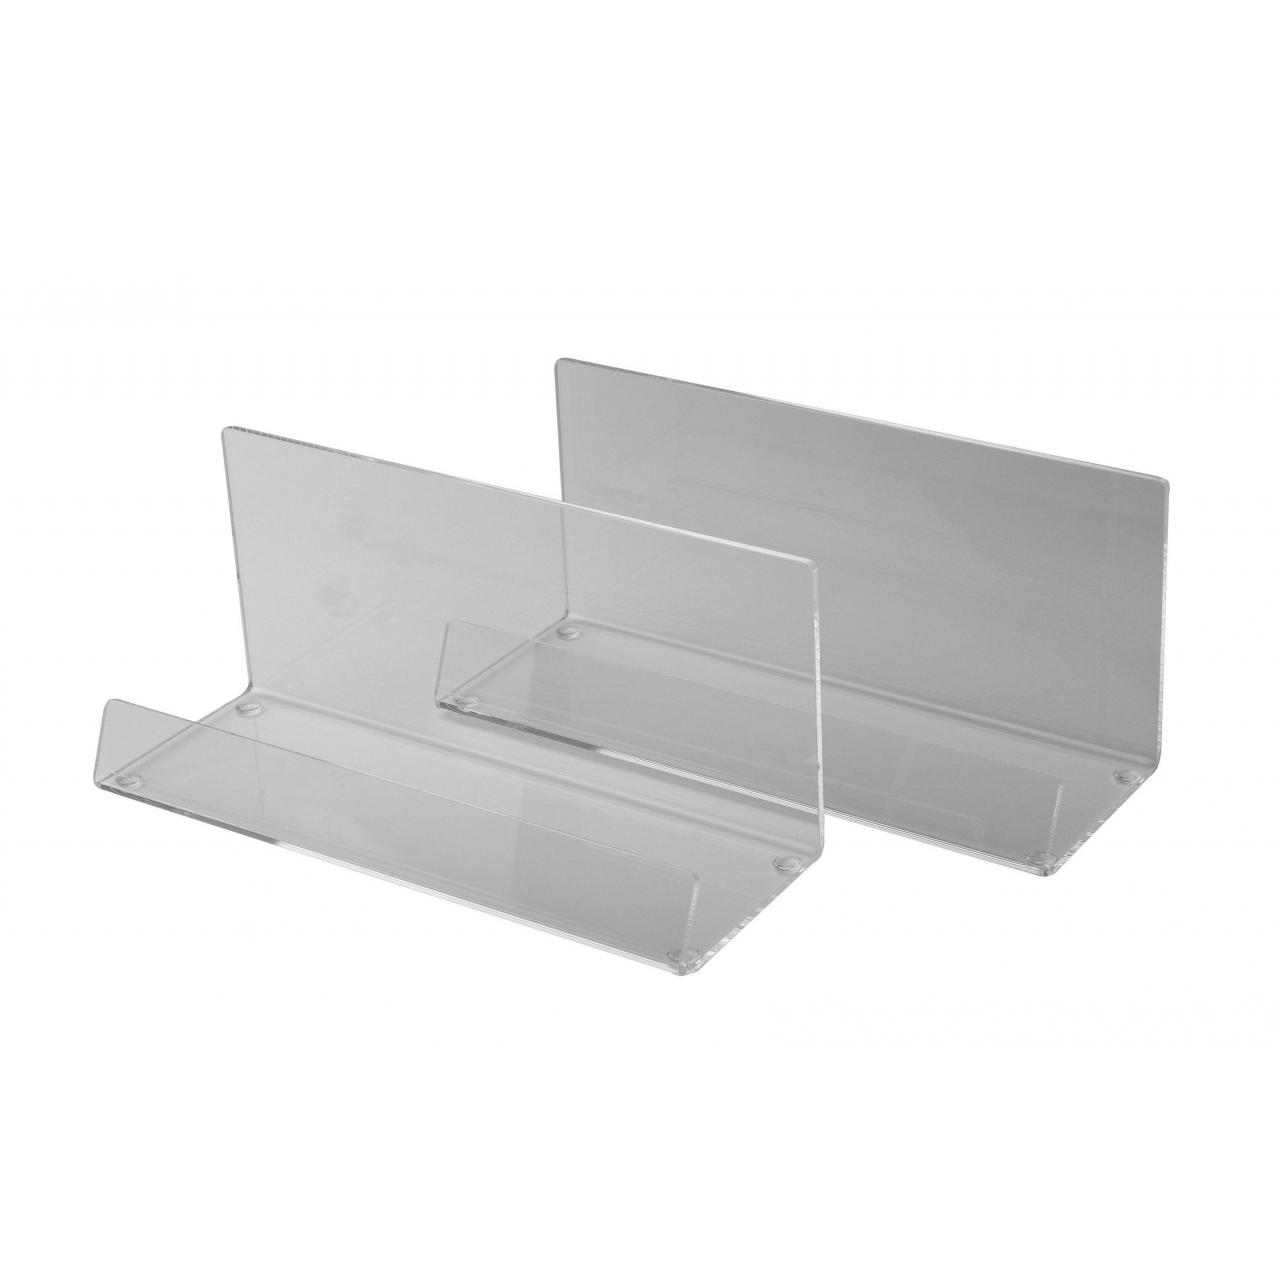 FROSTED UNBRANDED DISPLAY STAND (Pack of 2)